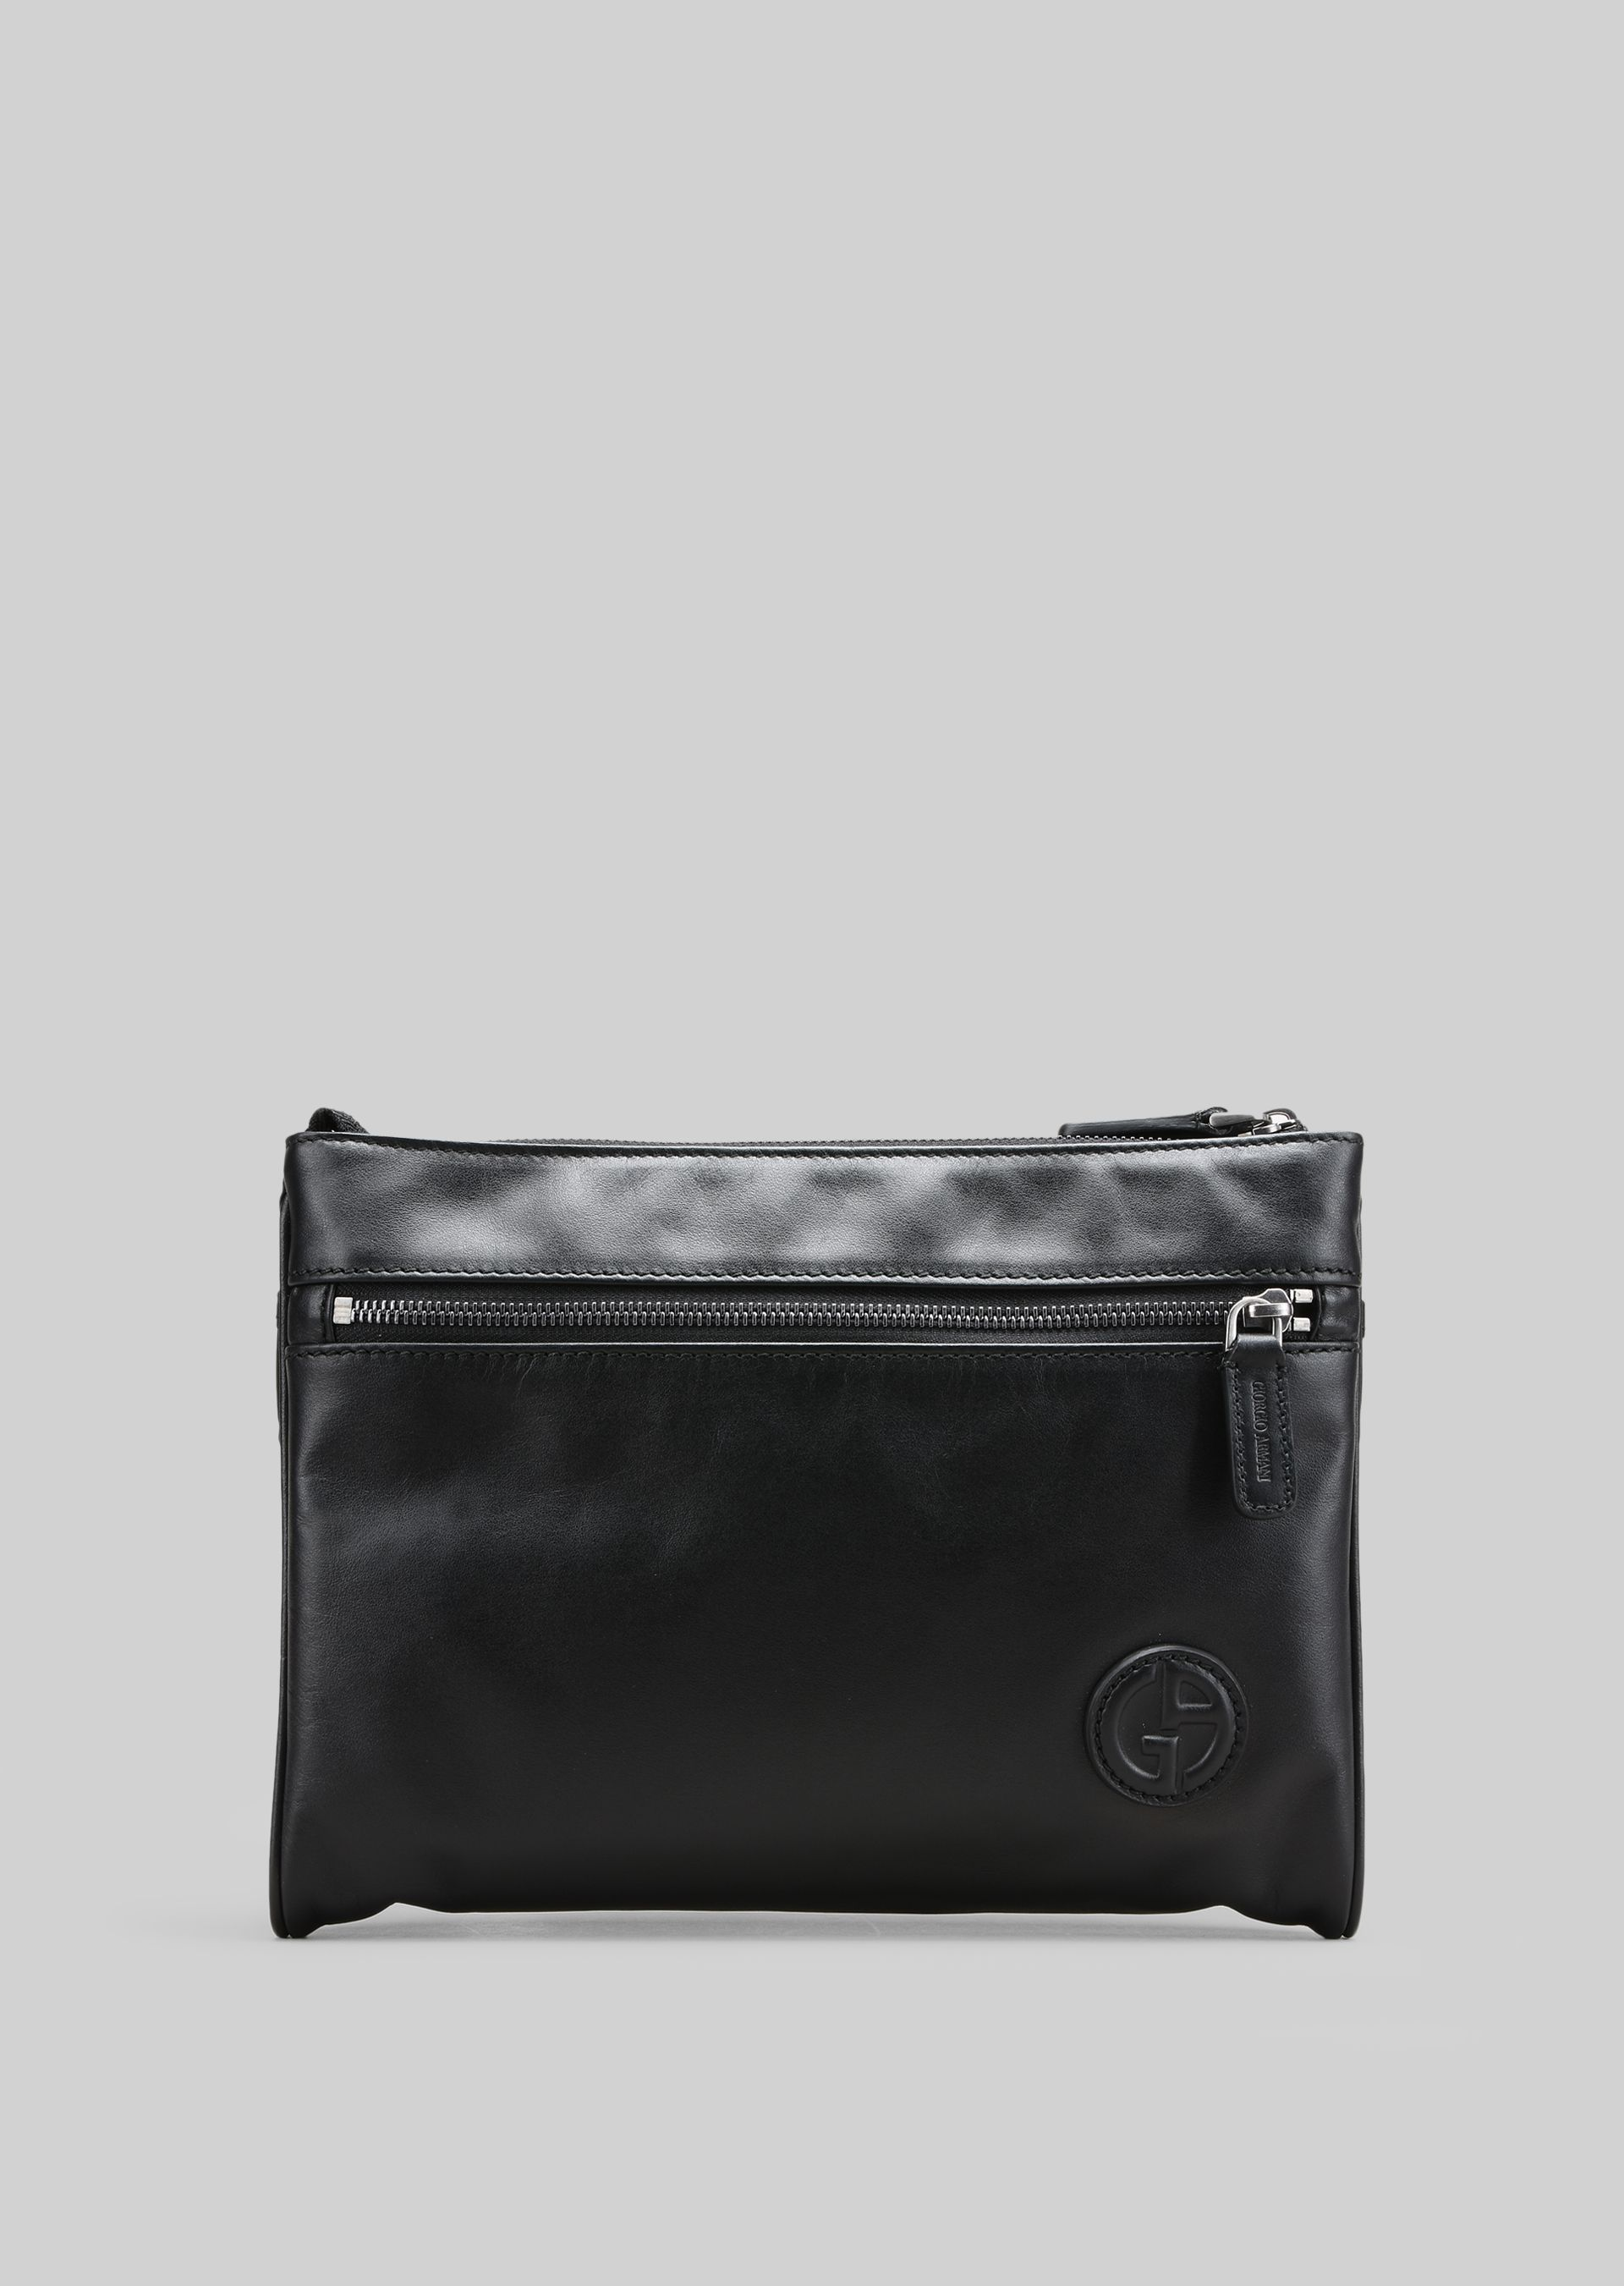 POCHETTE PORTE DOCUMENTS Homme Giorgio Armani - Pochette porte document